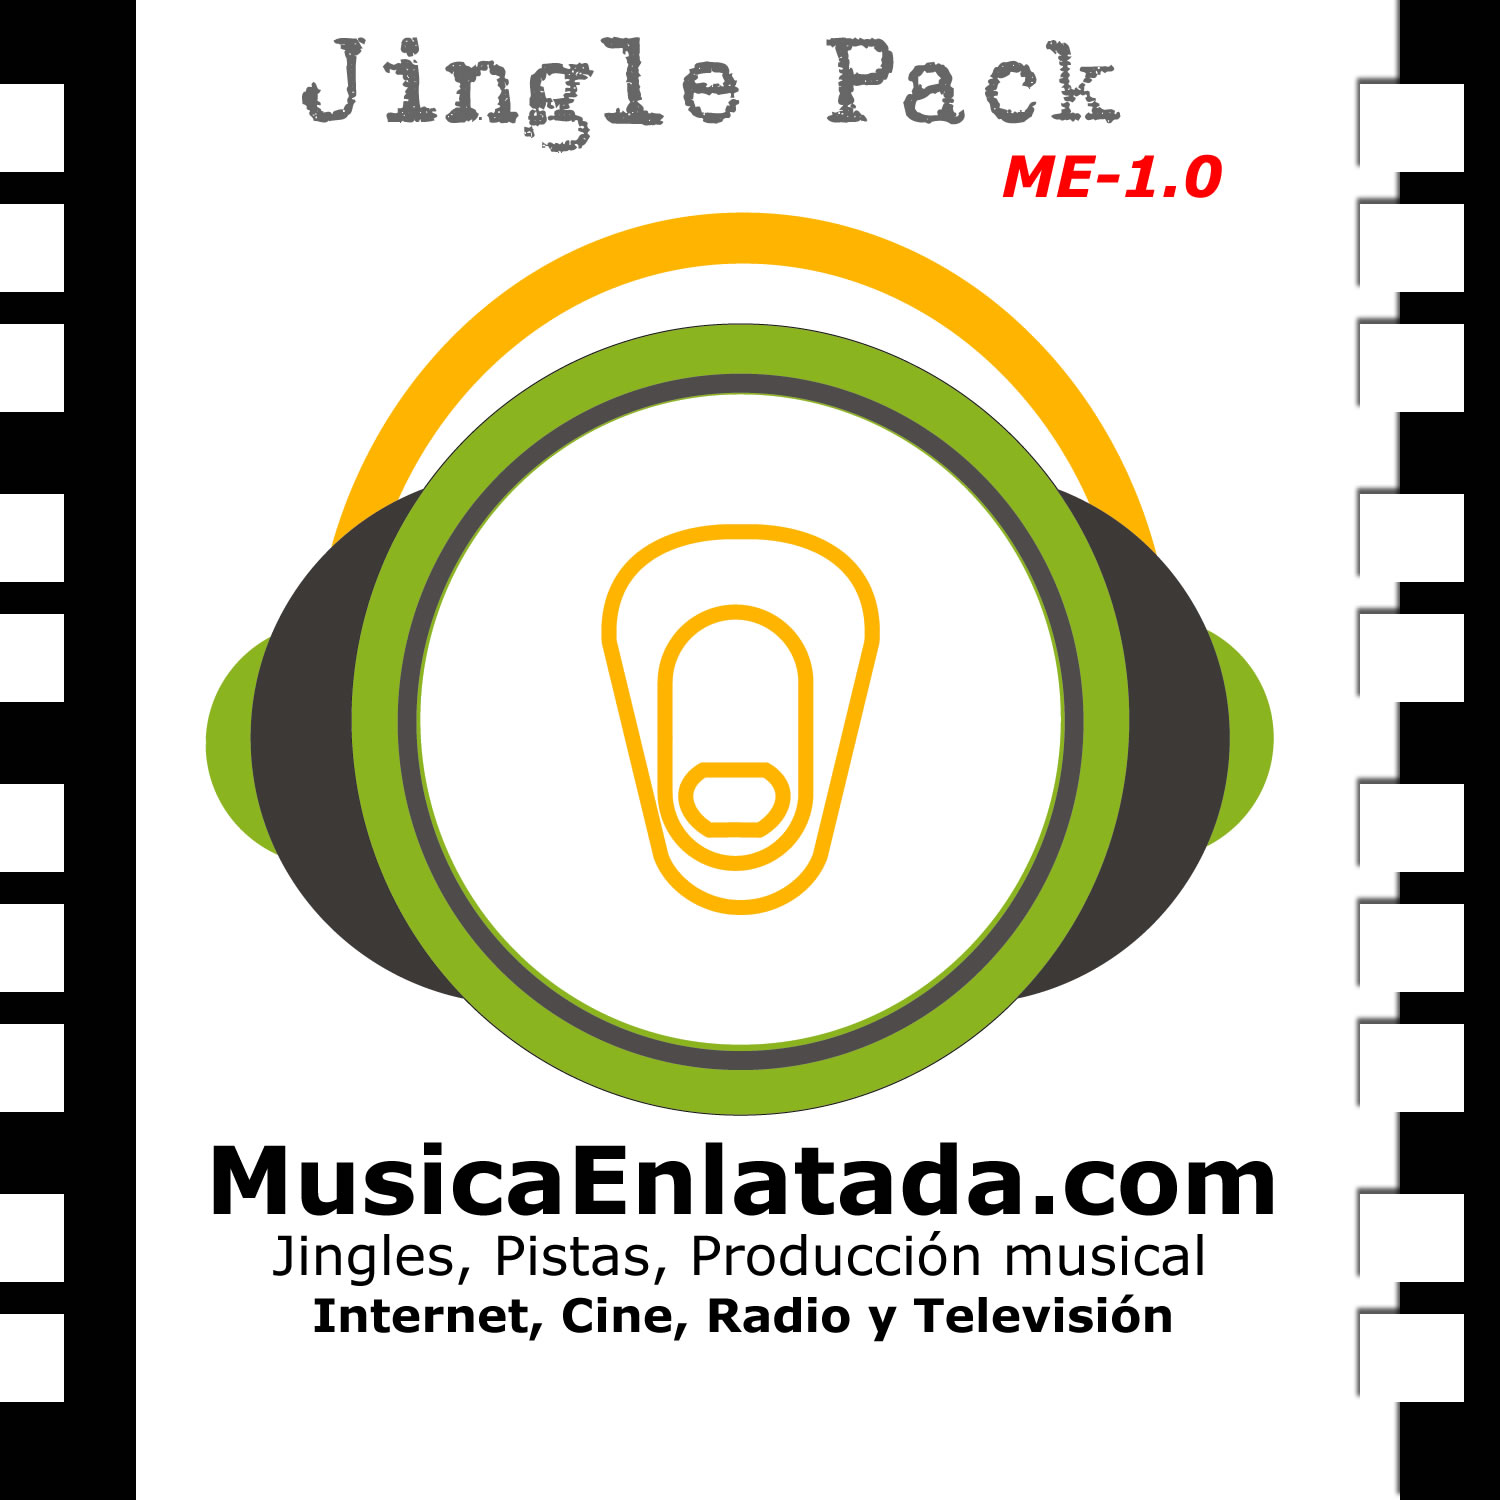 Jingle Pack ME-1.0